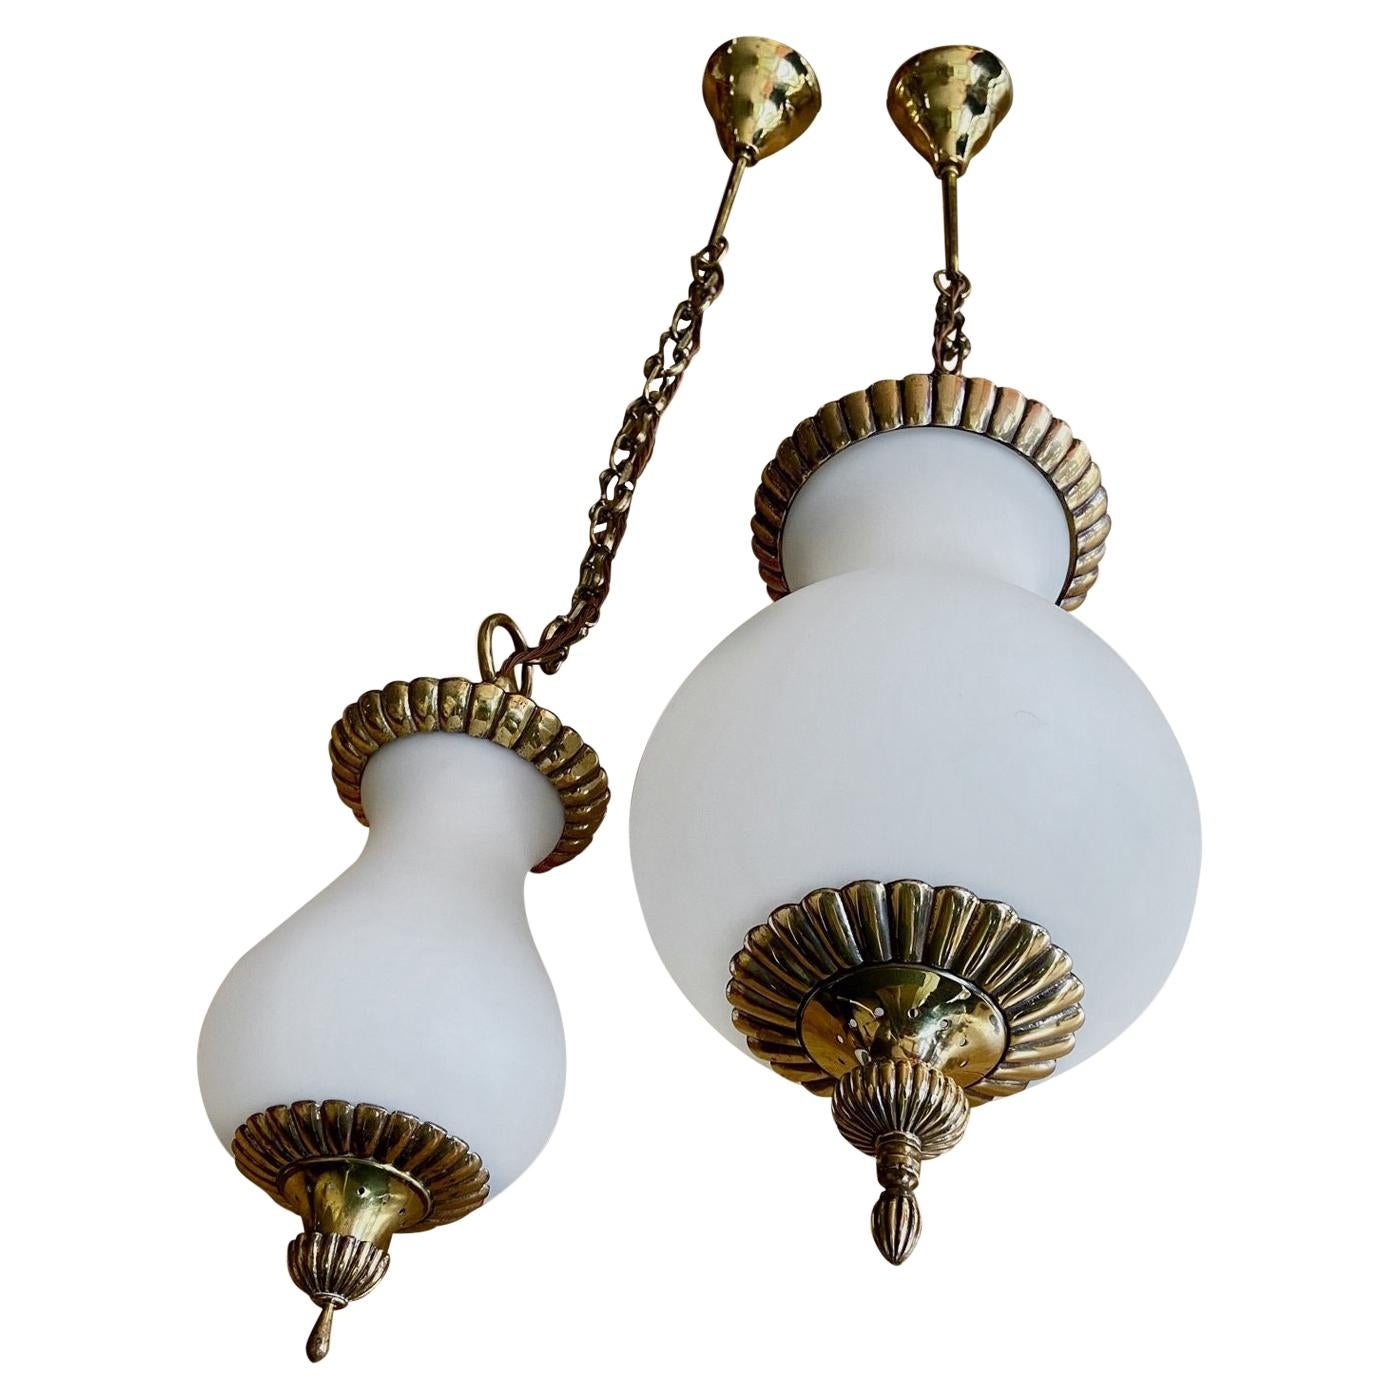 One Large and One Small Glass and Brass Lanterns or Pendant Lights